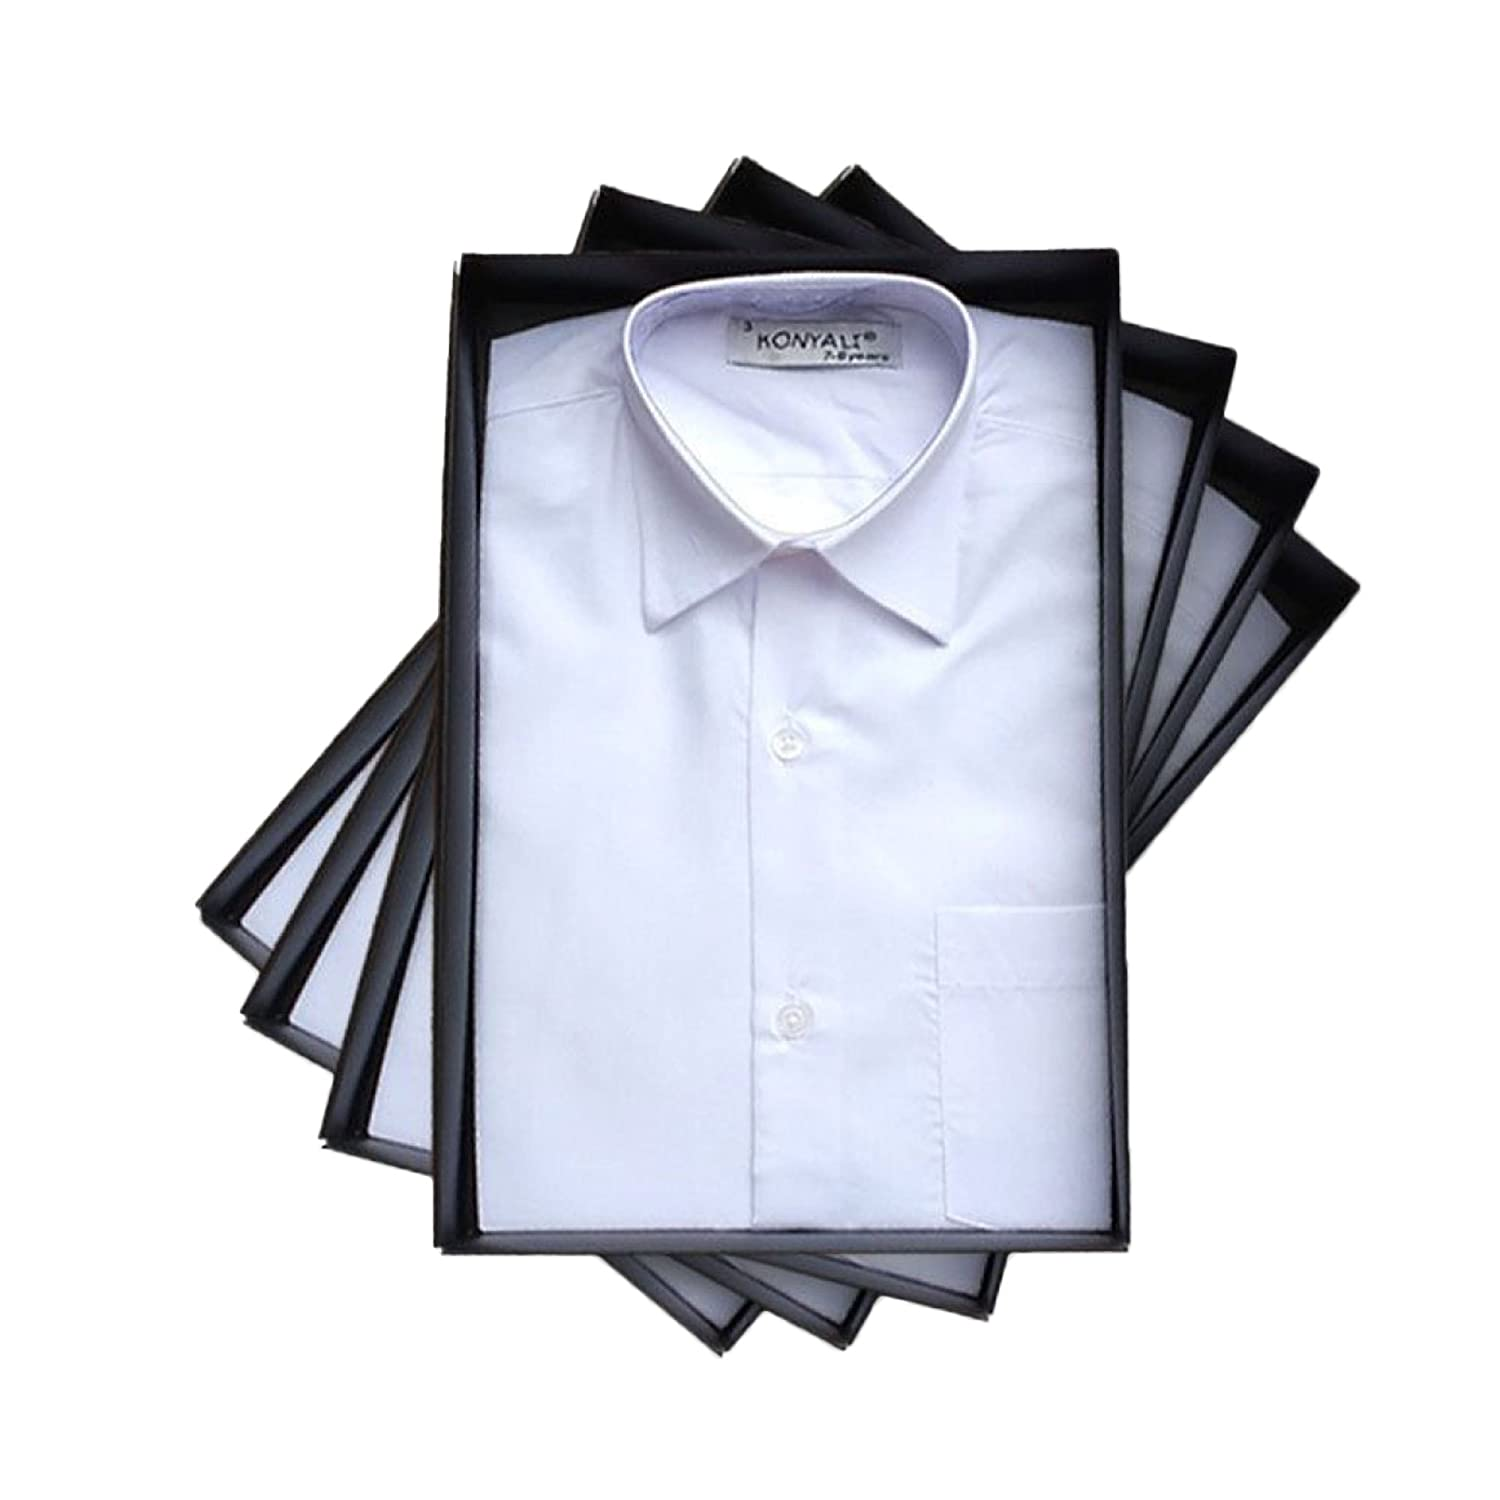 Page Boy Wing Collar Shirt Kids Cotton Blend Shirt Boys Formal White Shirts